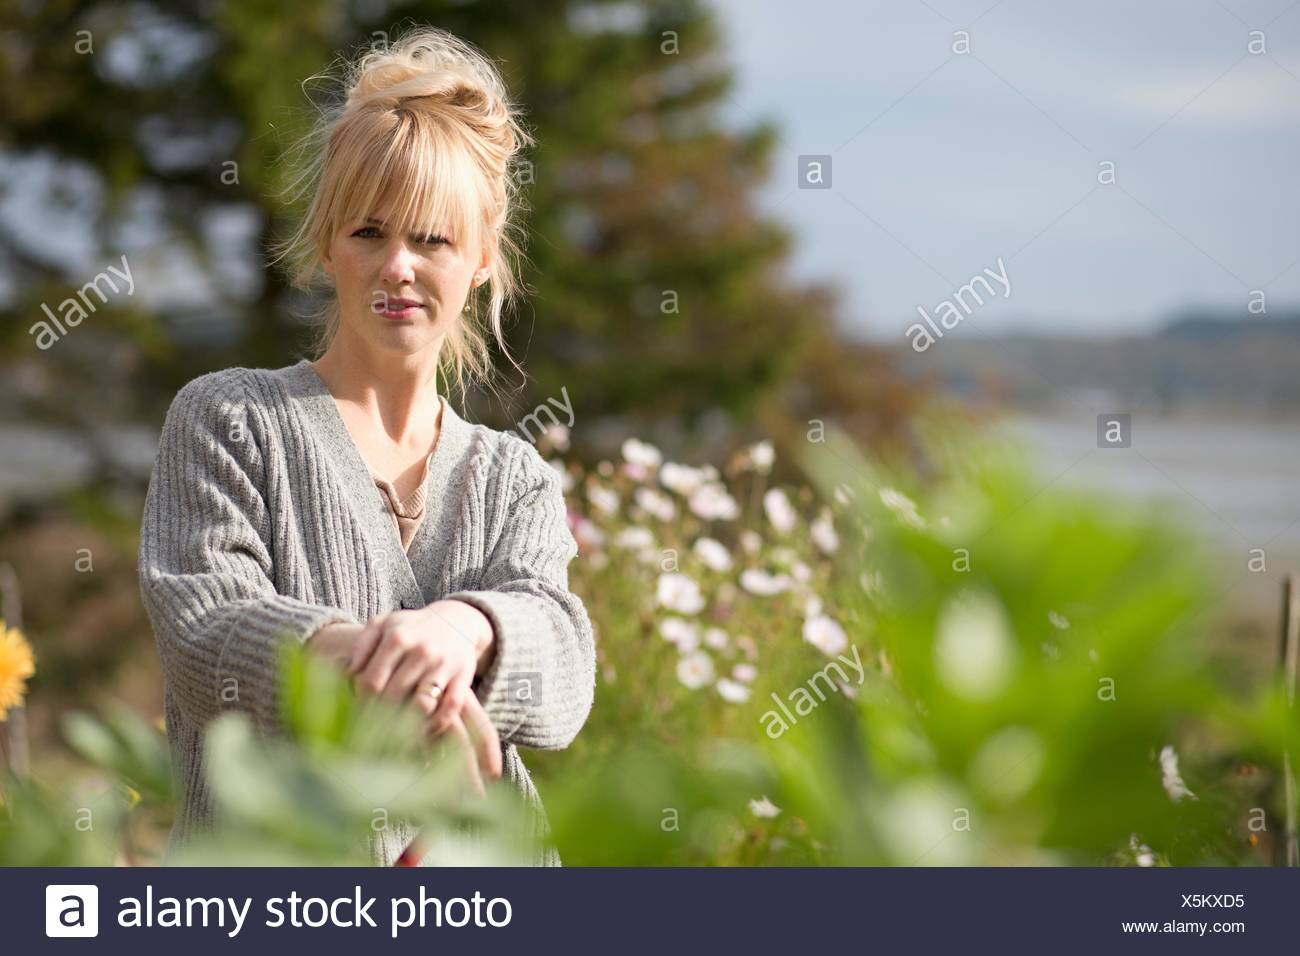 Portrait of woman in organic garden, Orust, Sweden Stock Photo